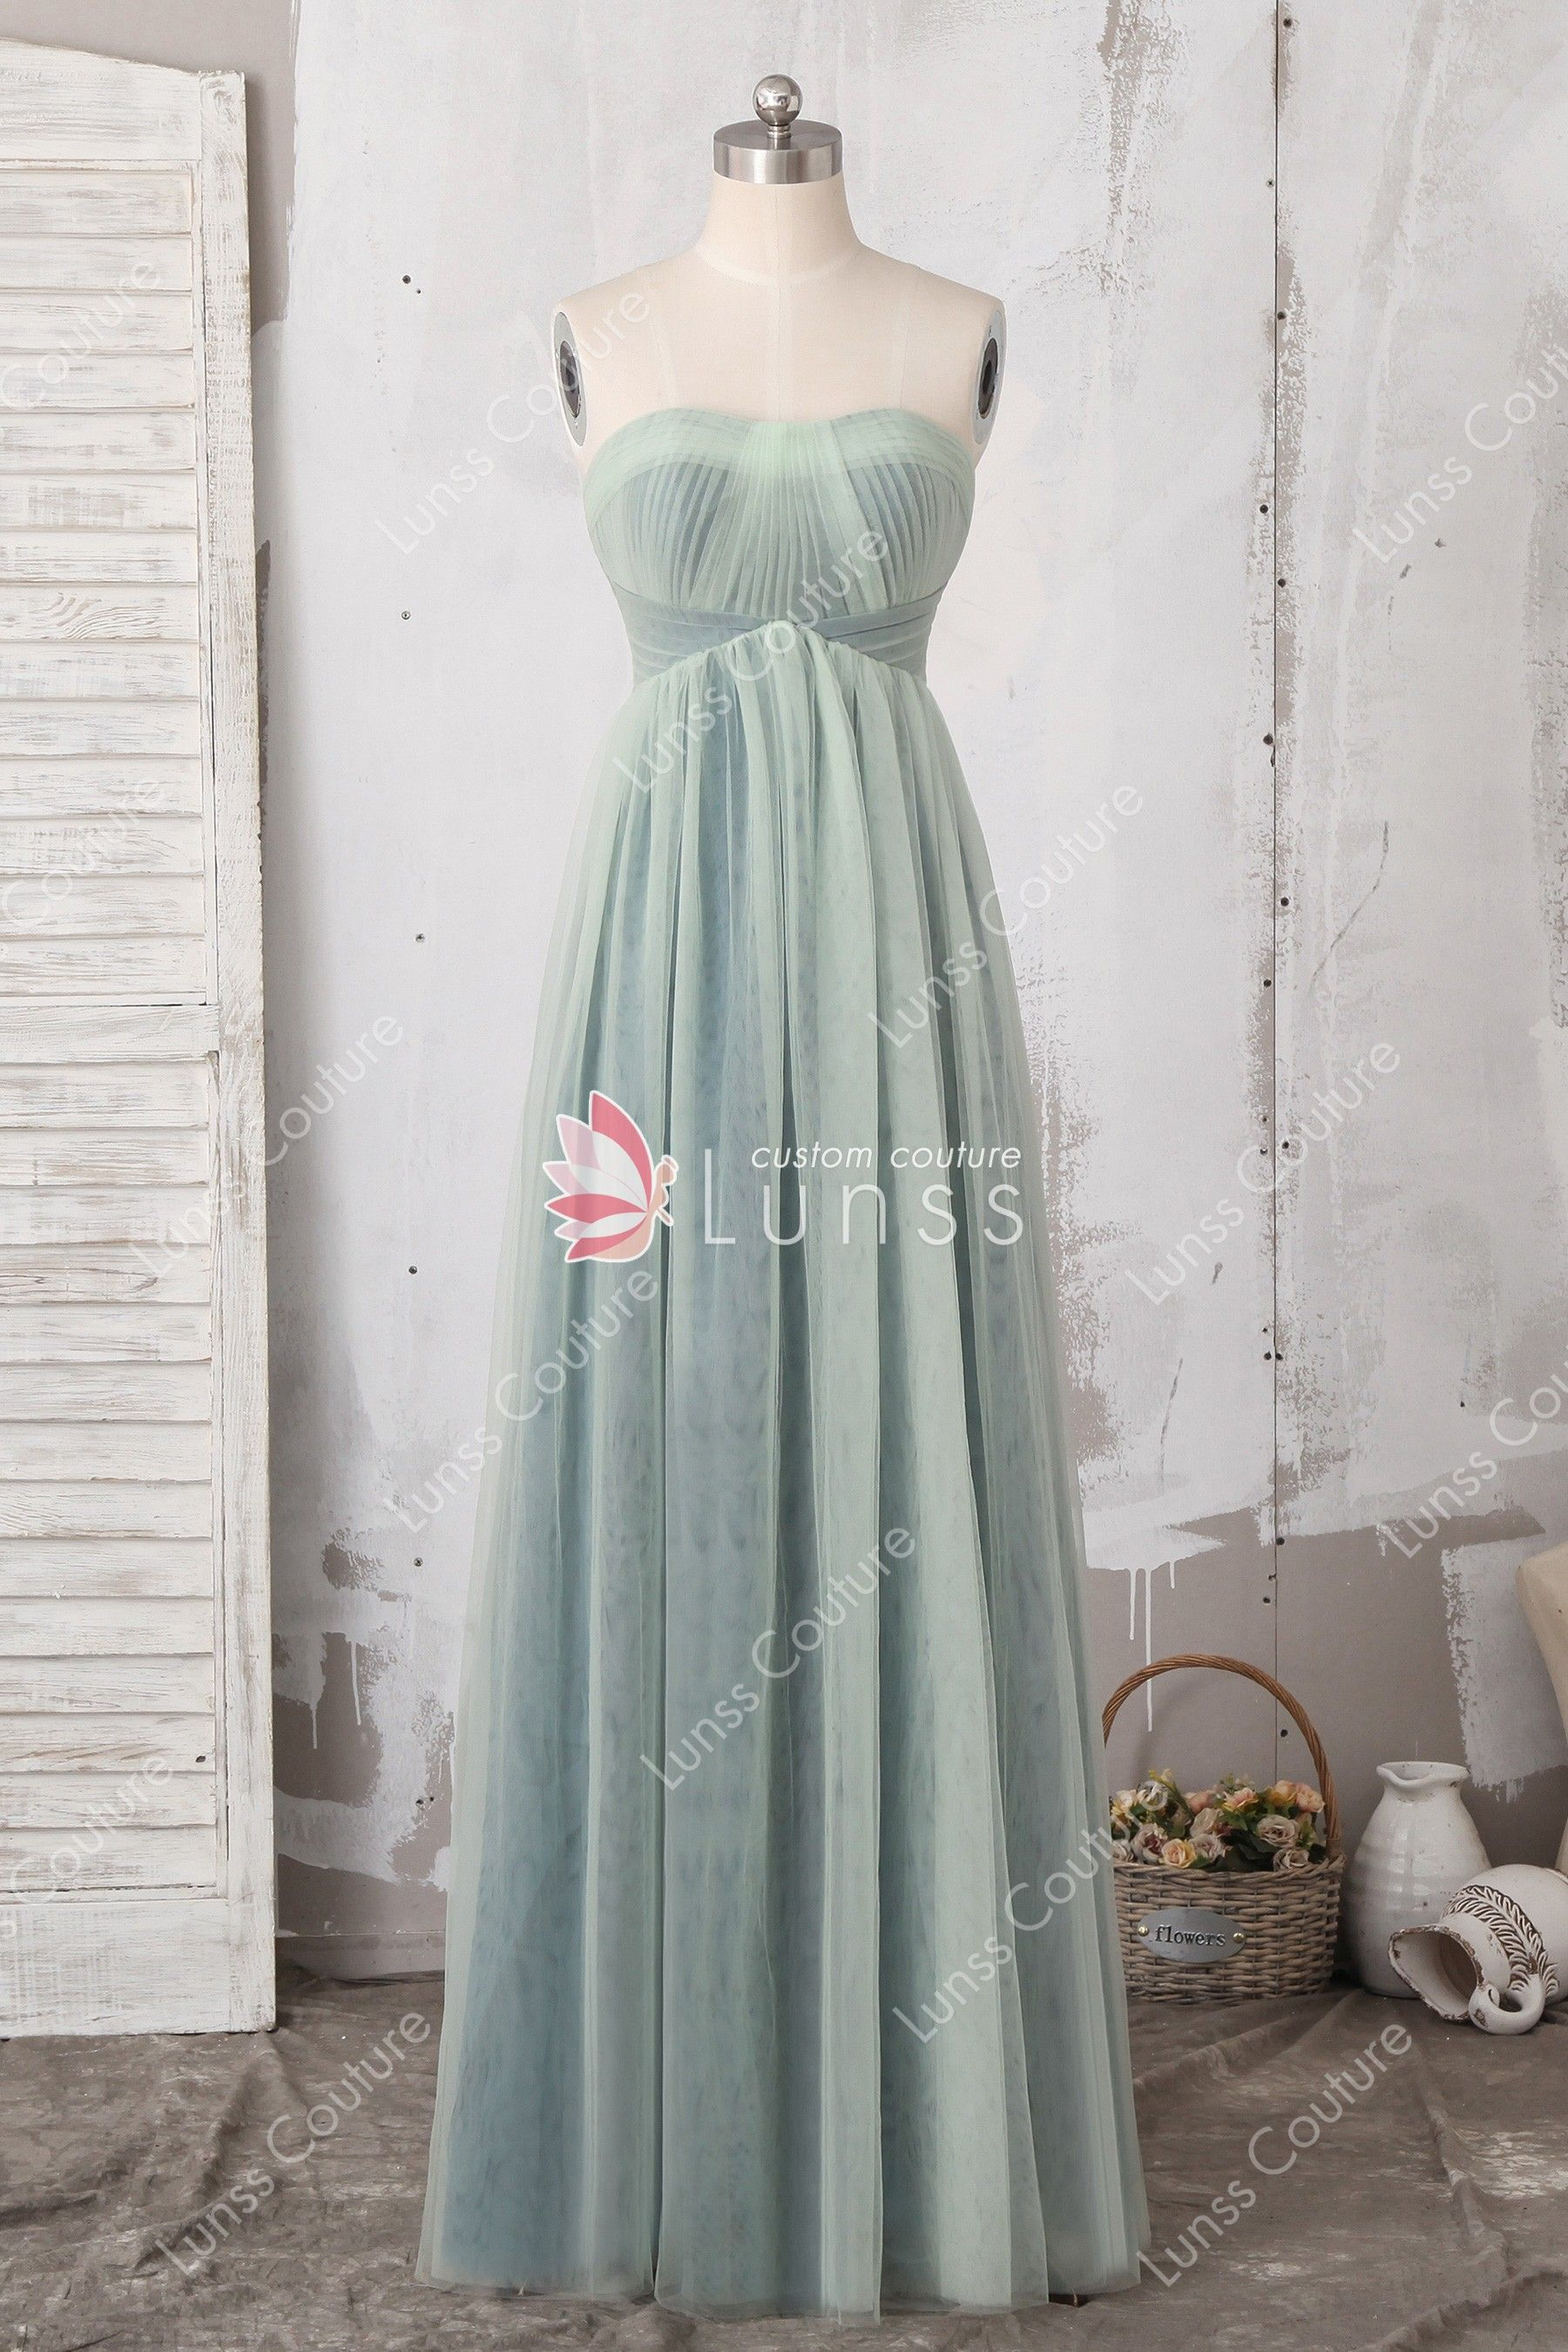 cf408a28dbf Chic Sage Green Strapless Pleated Bodice Open Back Floor-length A-line  Tulle Bridesmaid  Prom Dress